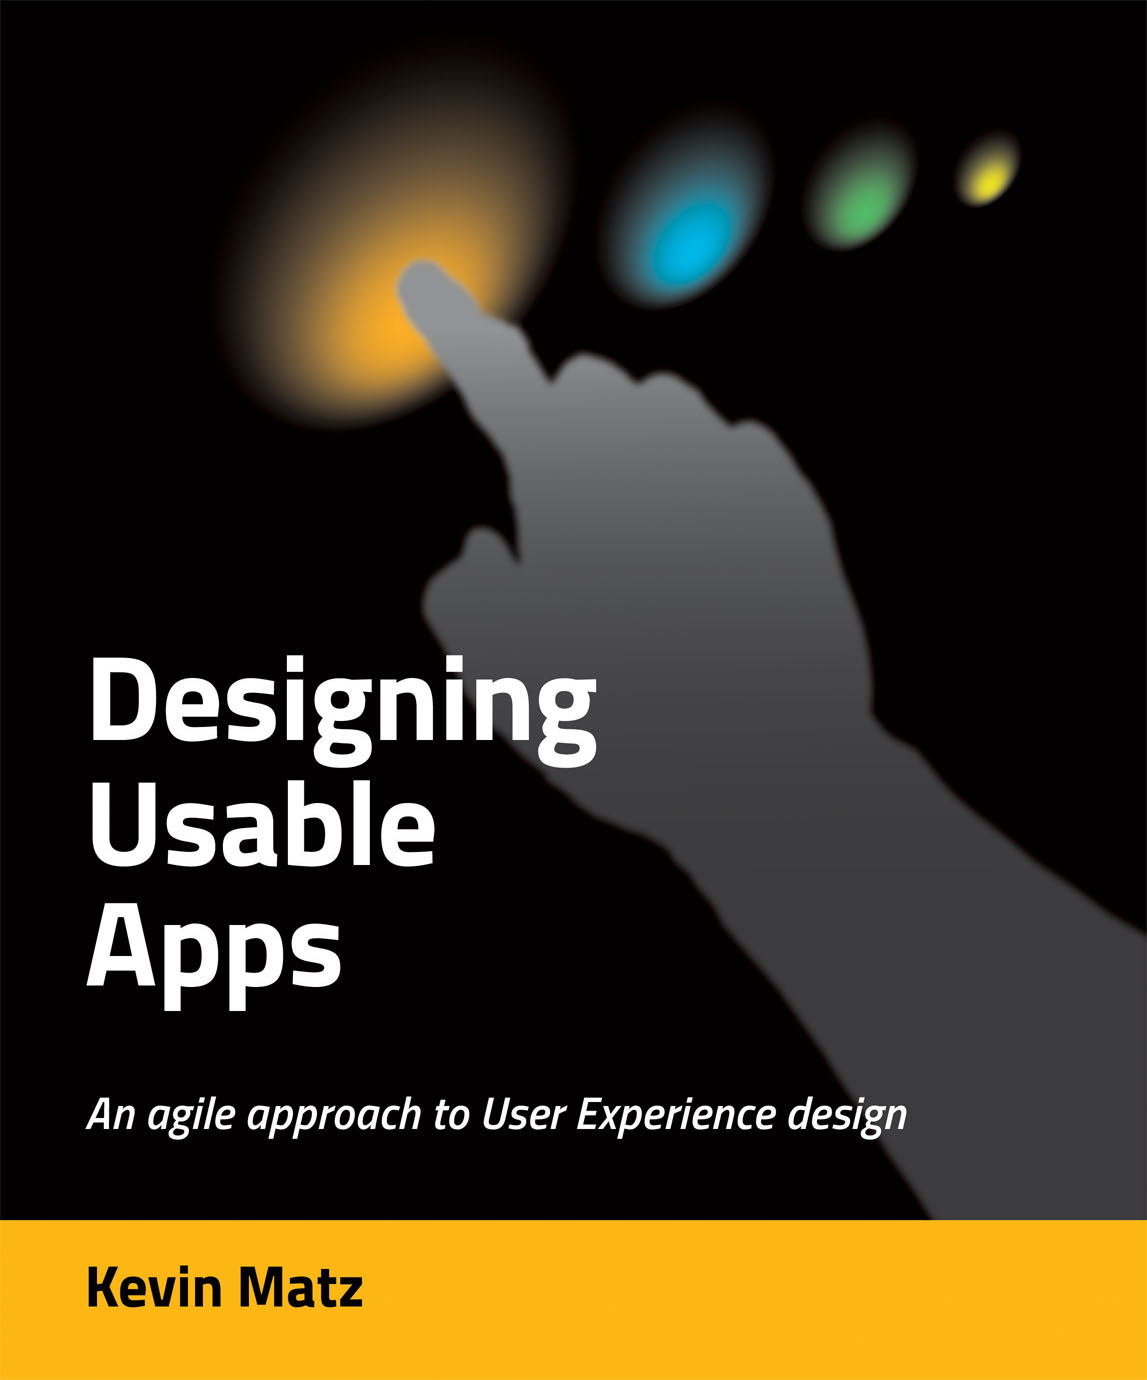 Designing Usable Apps (book cover)